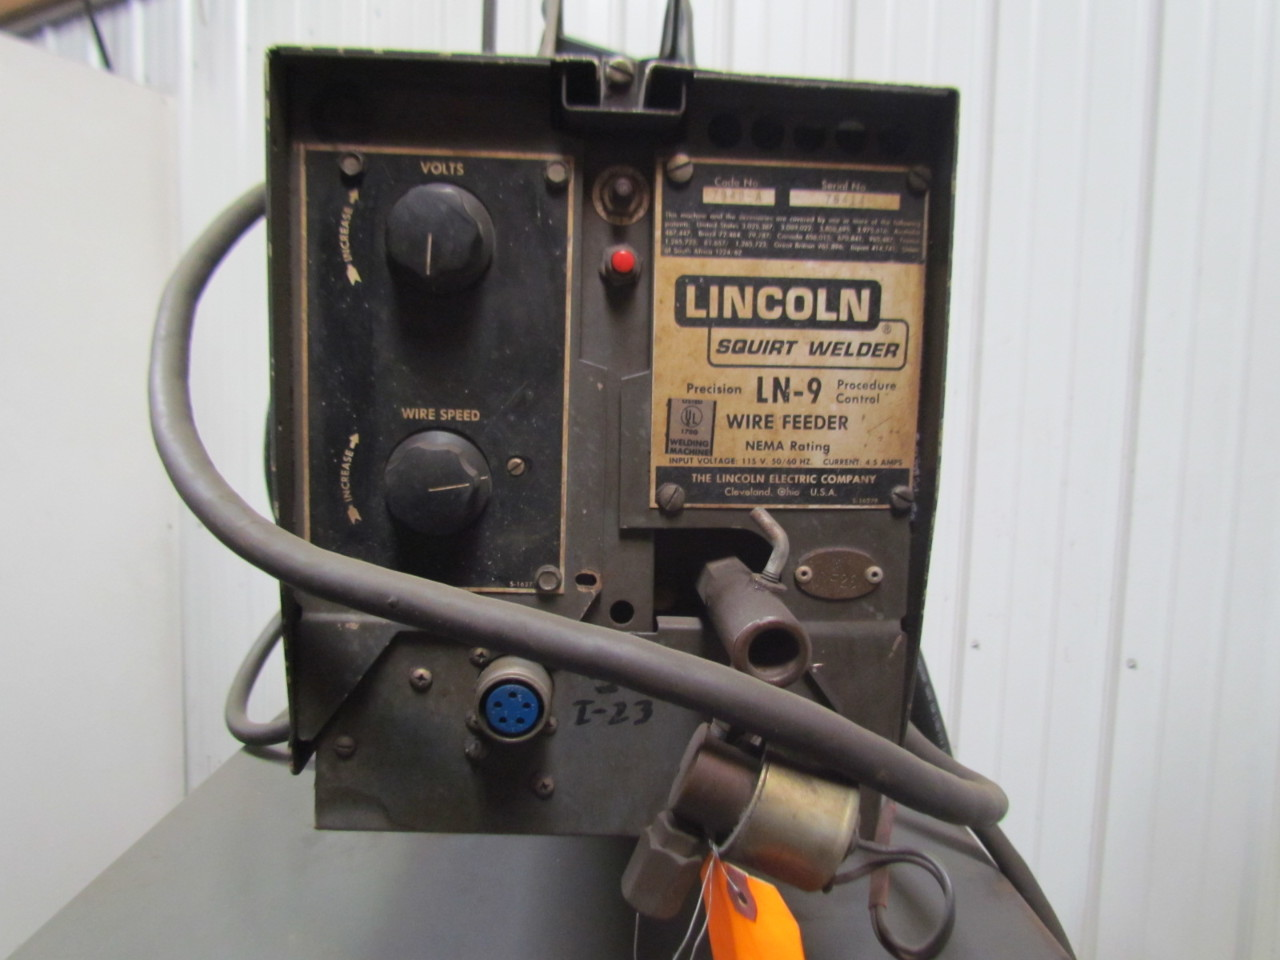 76918 lincoln idealarc dc 600 8289m mig welder w ln9 wire feeder 600 amp 230 460v 3ph 9 welder wire feeder dolgular com Boat Wiring Diagram for Dummies at readyjetset.co